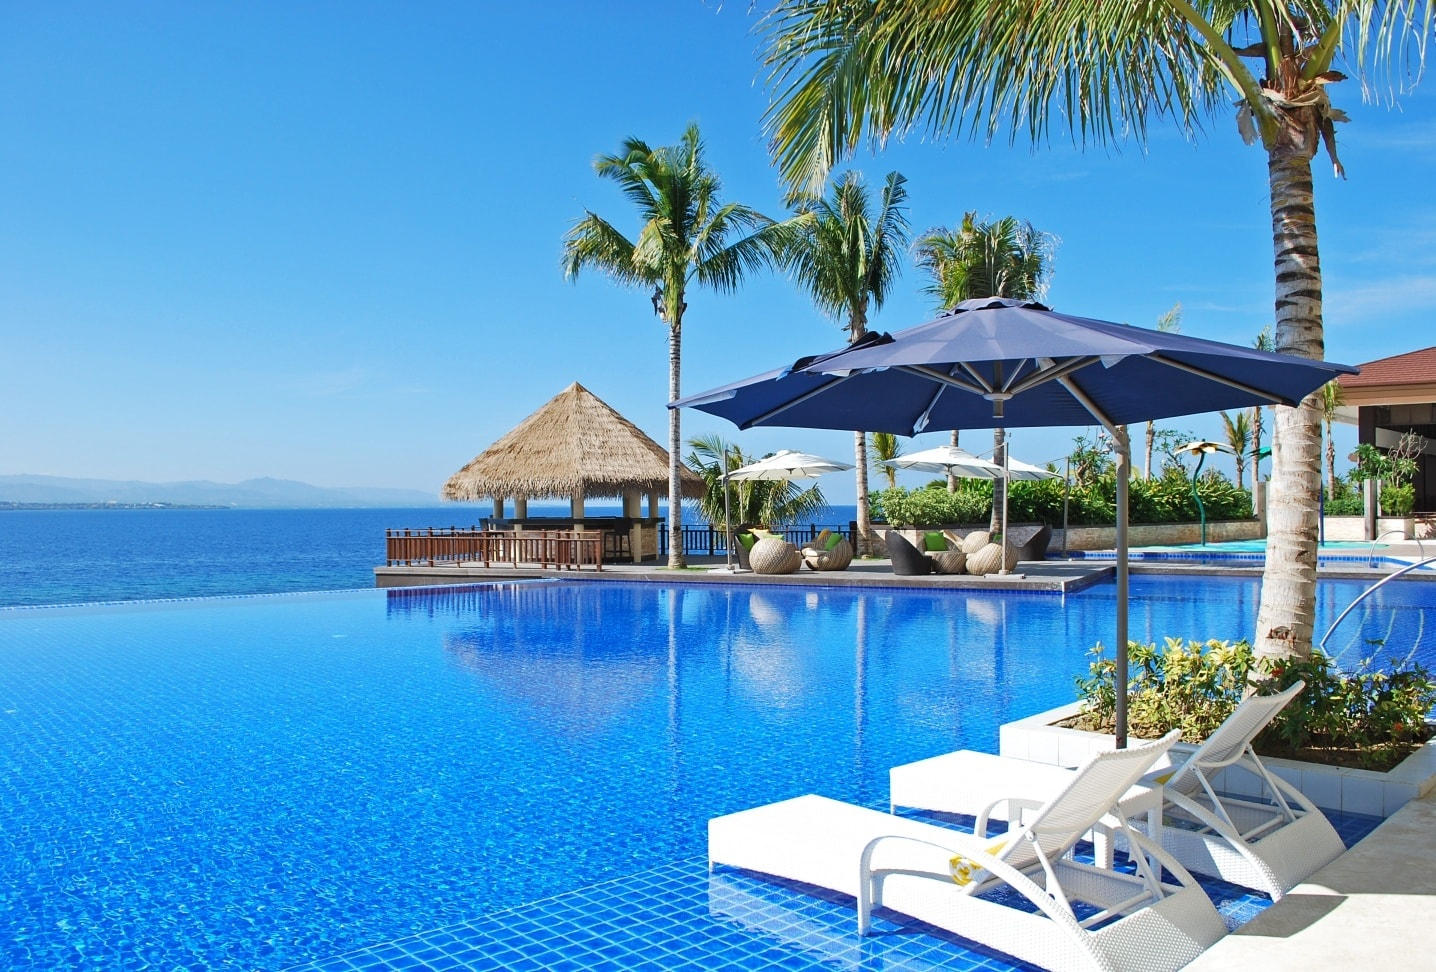 Overlooking view of the sea from the pool area in Dusit Mactan Resort